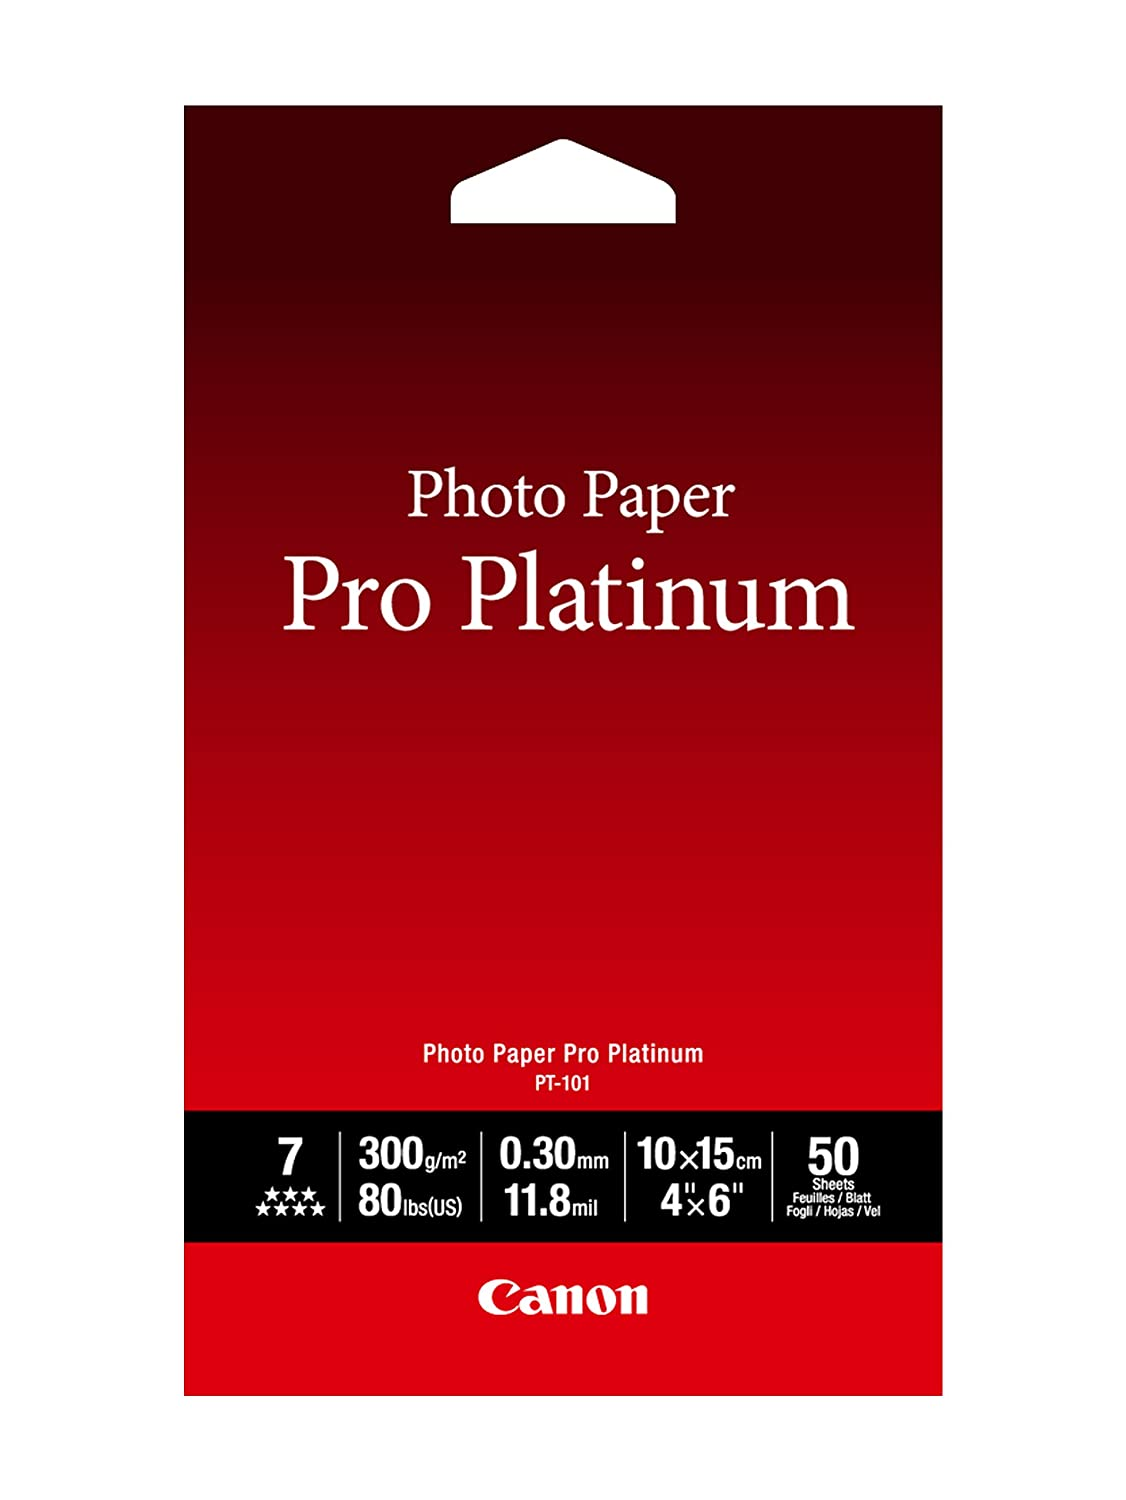 Canon PT-101 4-Inch x 6-Inch Photo Paper Pro Platinum (20 Sheets/Package) - 2768B013 Office Supplies